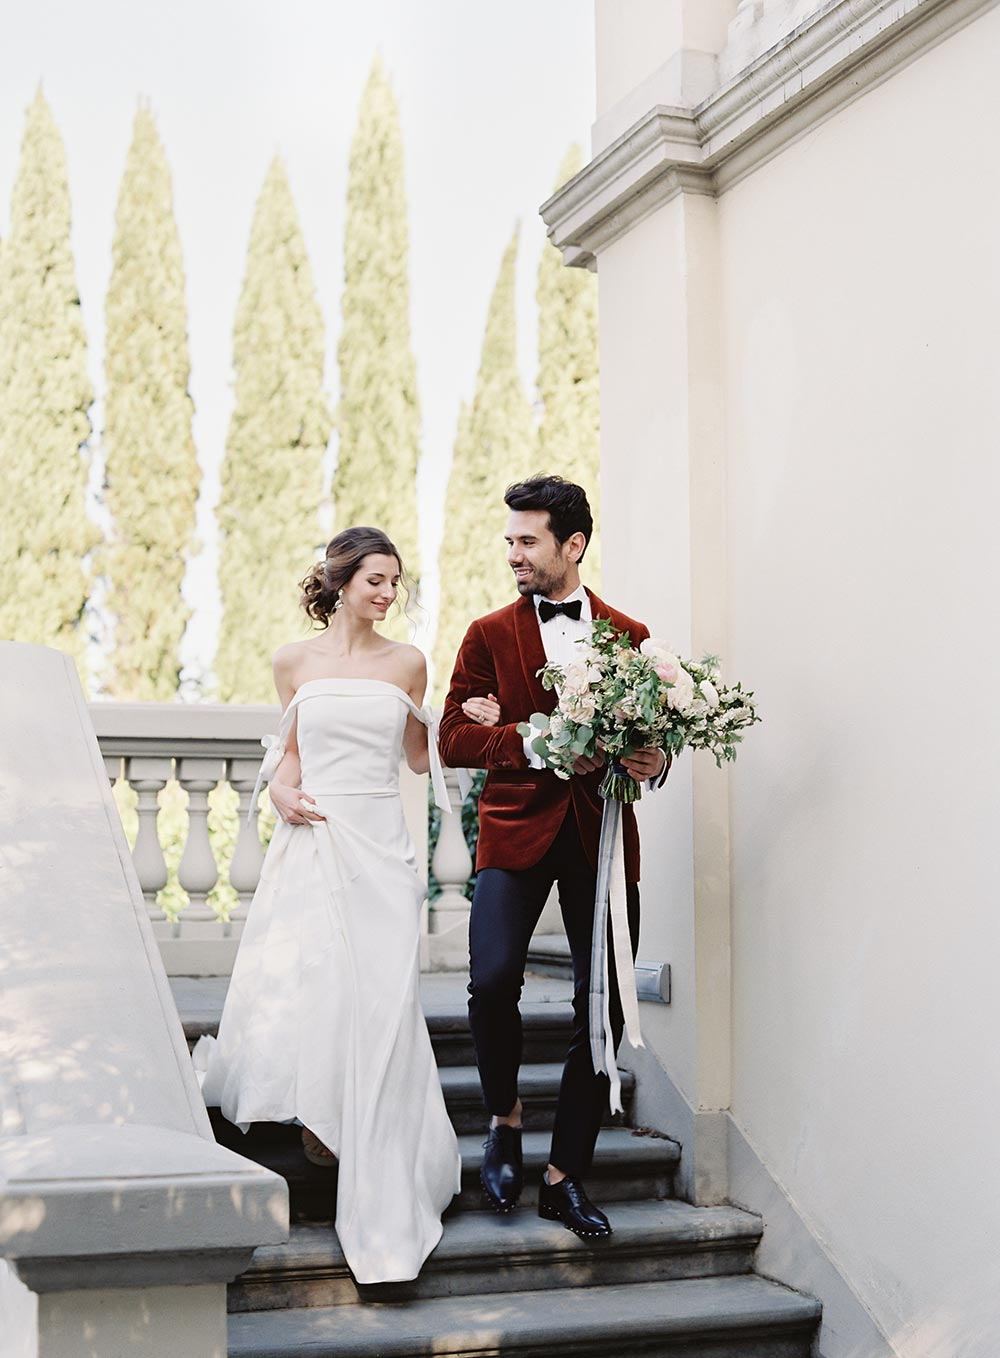 off-the-shoulder wedding dress and burnt orange velvet groom suit